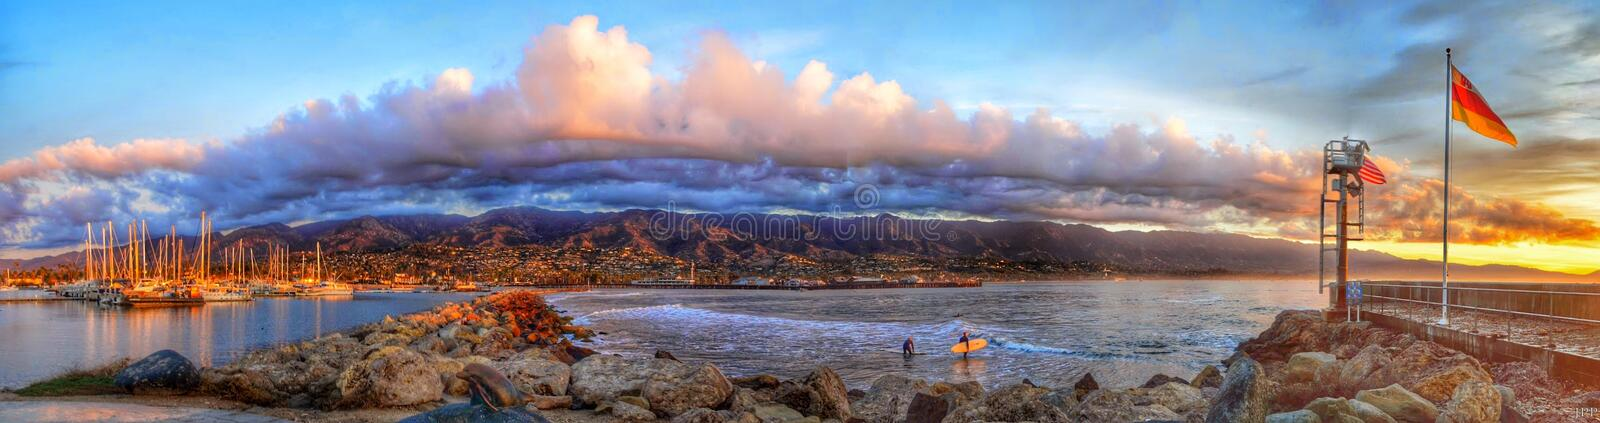 Download Sunrise Breakwater Santa Barbara California Stock Photo - Image of ocean, wharf: 72459012